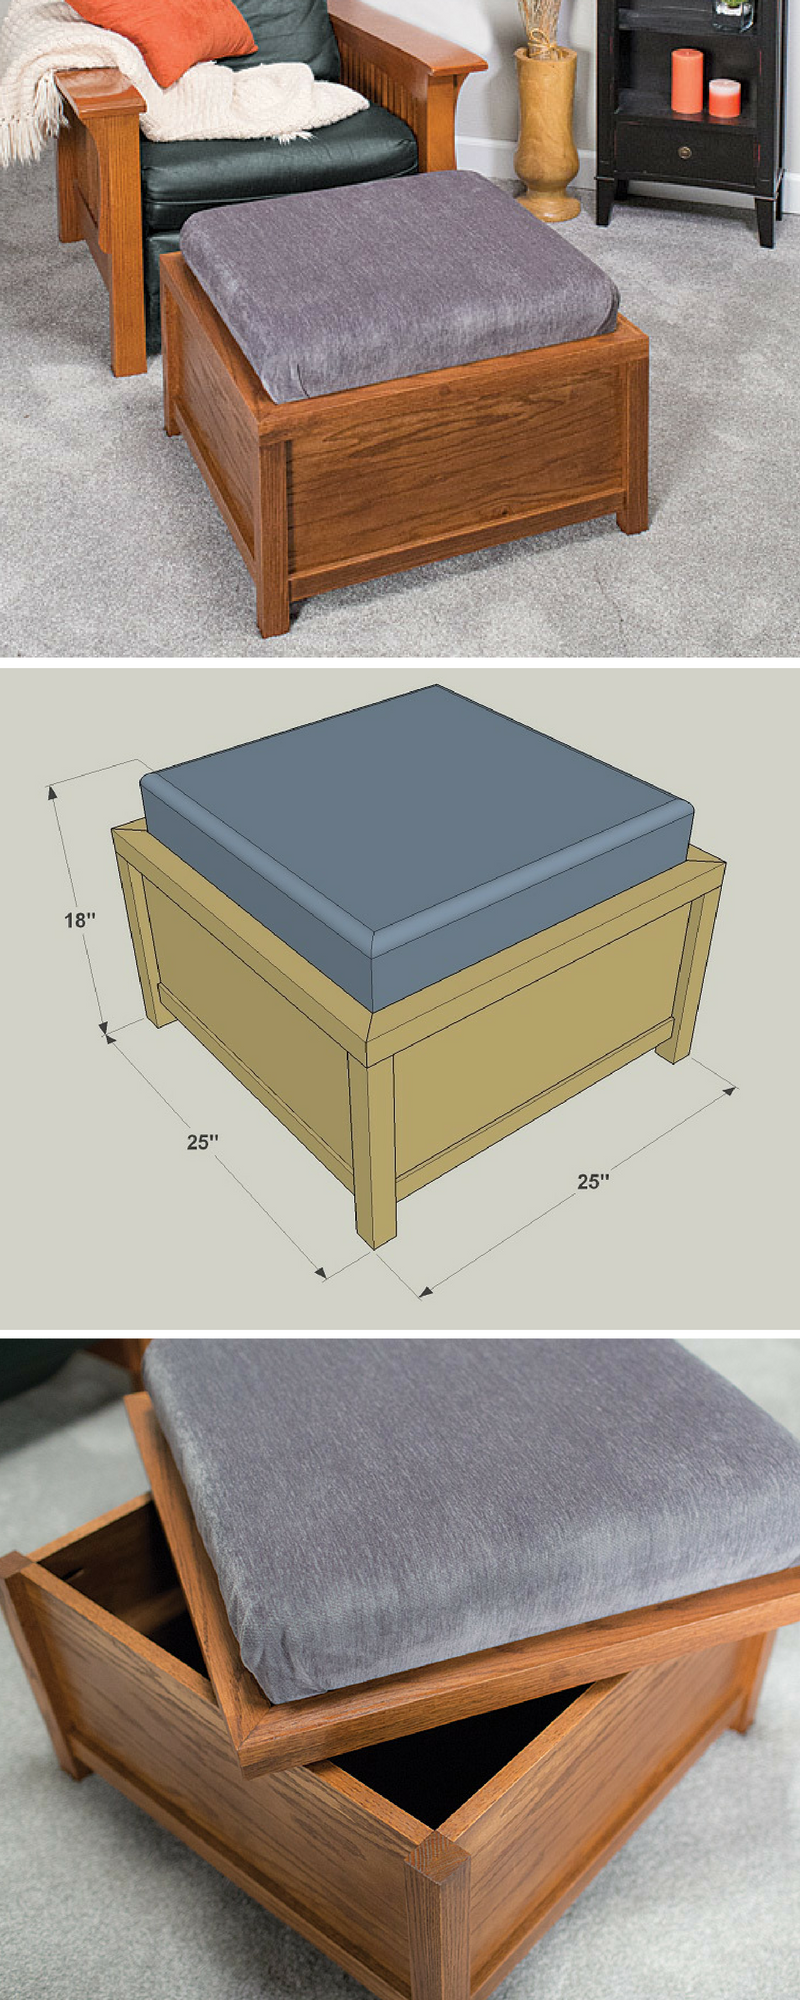 How to build a DIY Storage Ottoman Free printable project plans